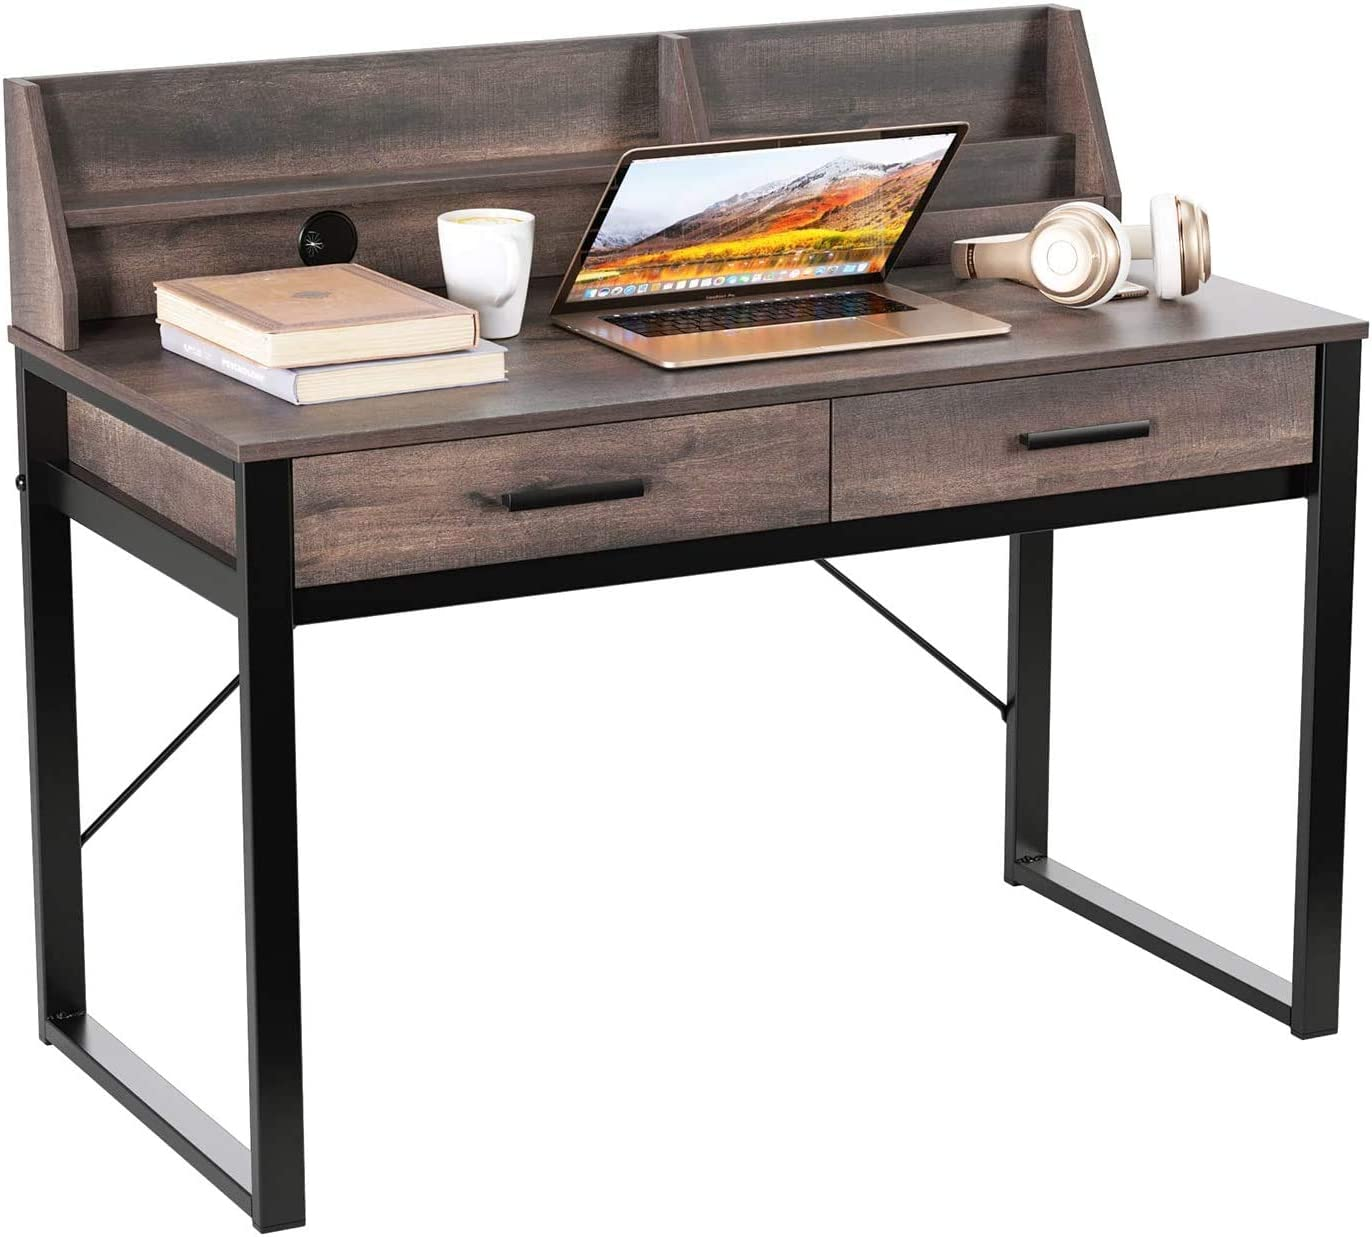 HOMECHO Computer Desk, Industrial Writing Desk with Drawers and Shelf, Home Office Writing Study Table for Bedroom, Study Room, Metal Frame, Easy Assembly, Rustic Brown